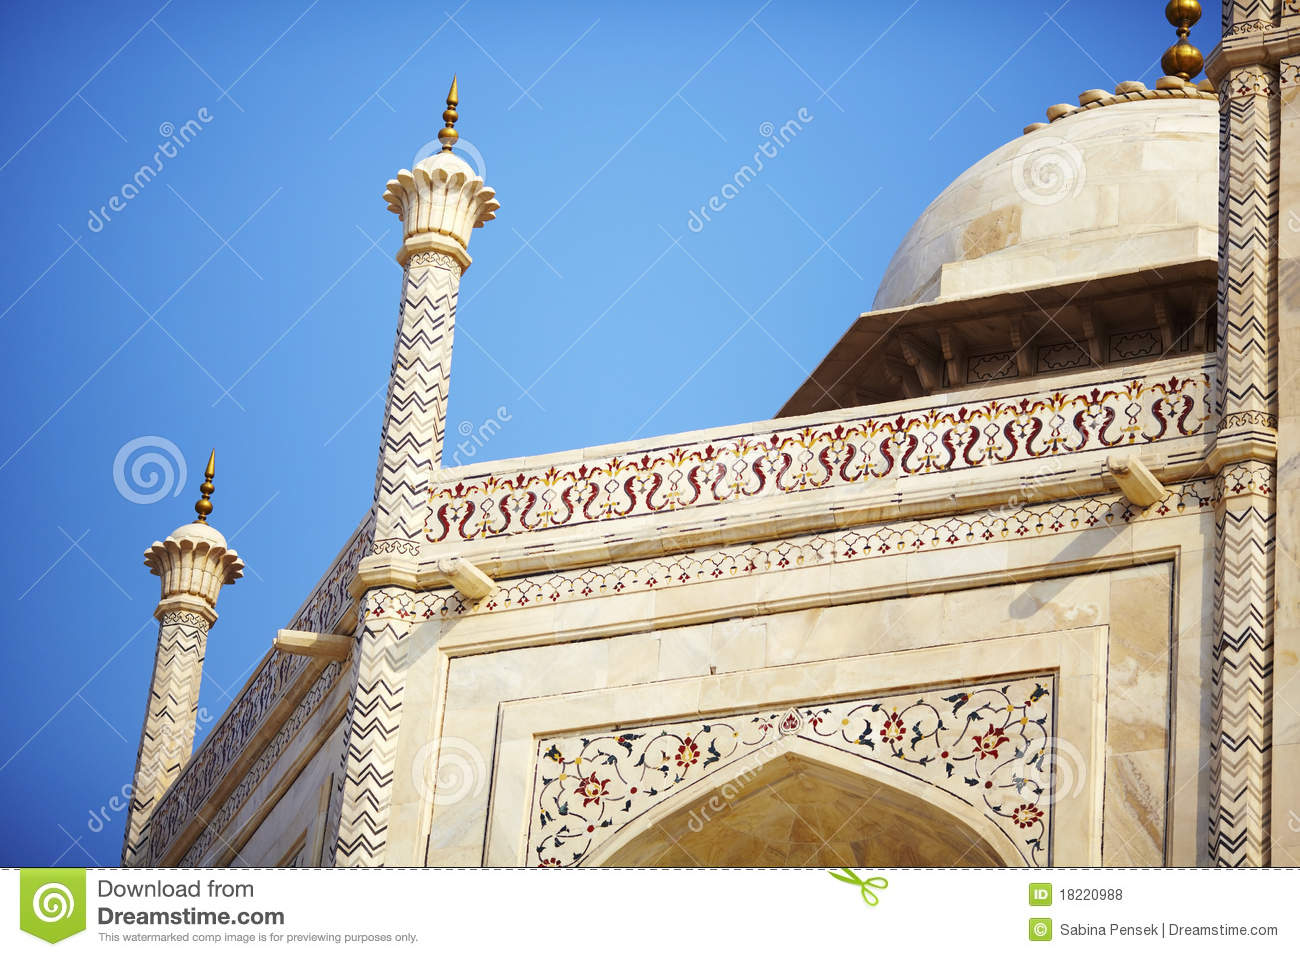 What Is A Mosque Detail: Mosque Detail Of The Dome And Pillars Royalty Free Stock